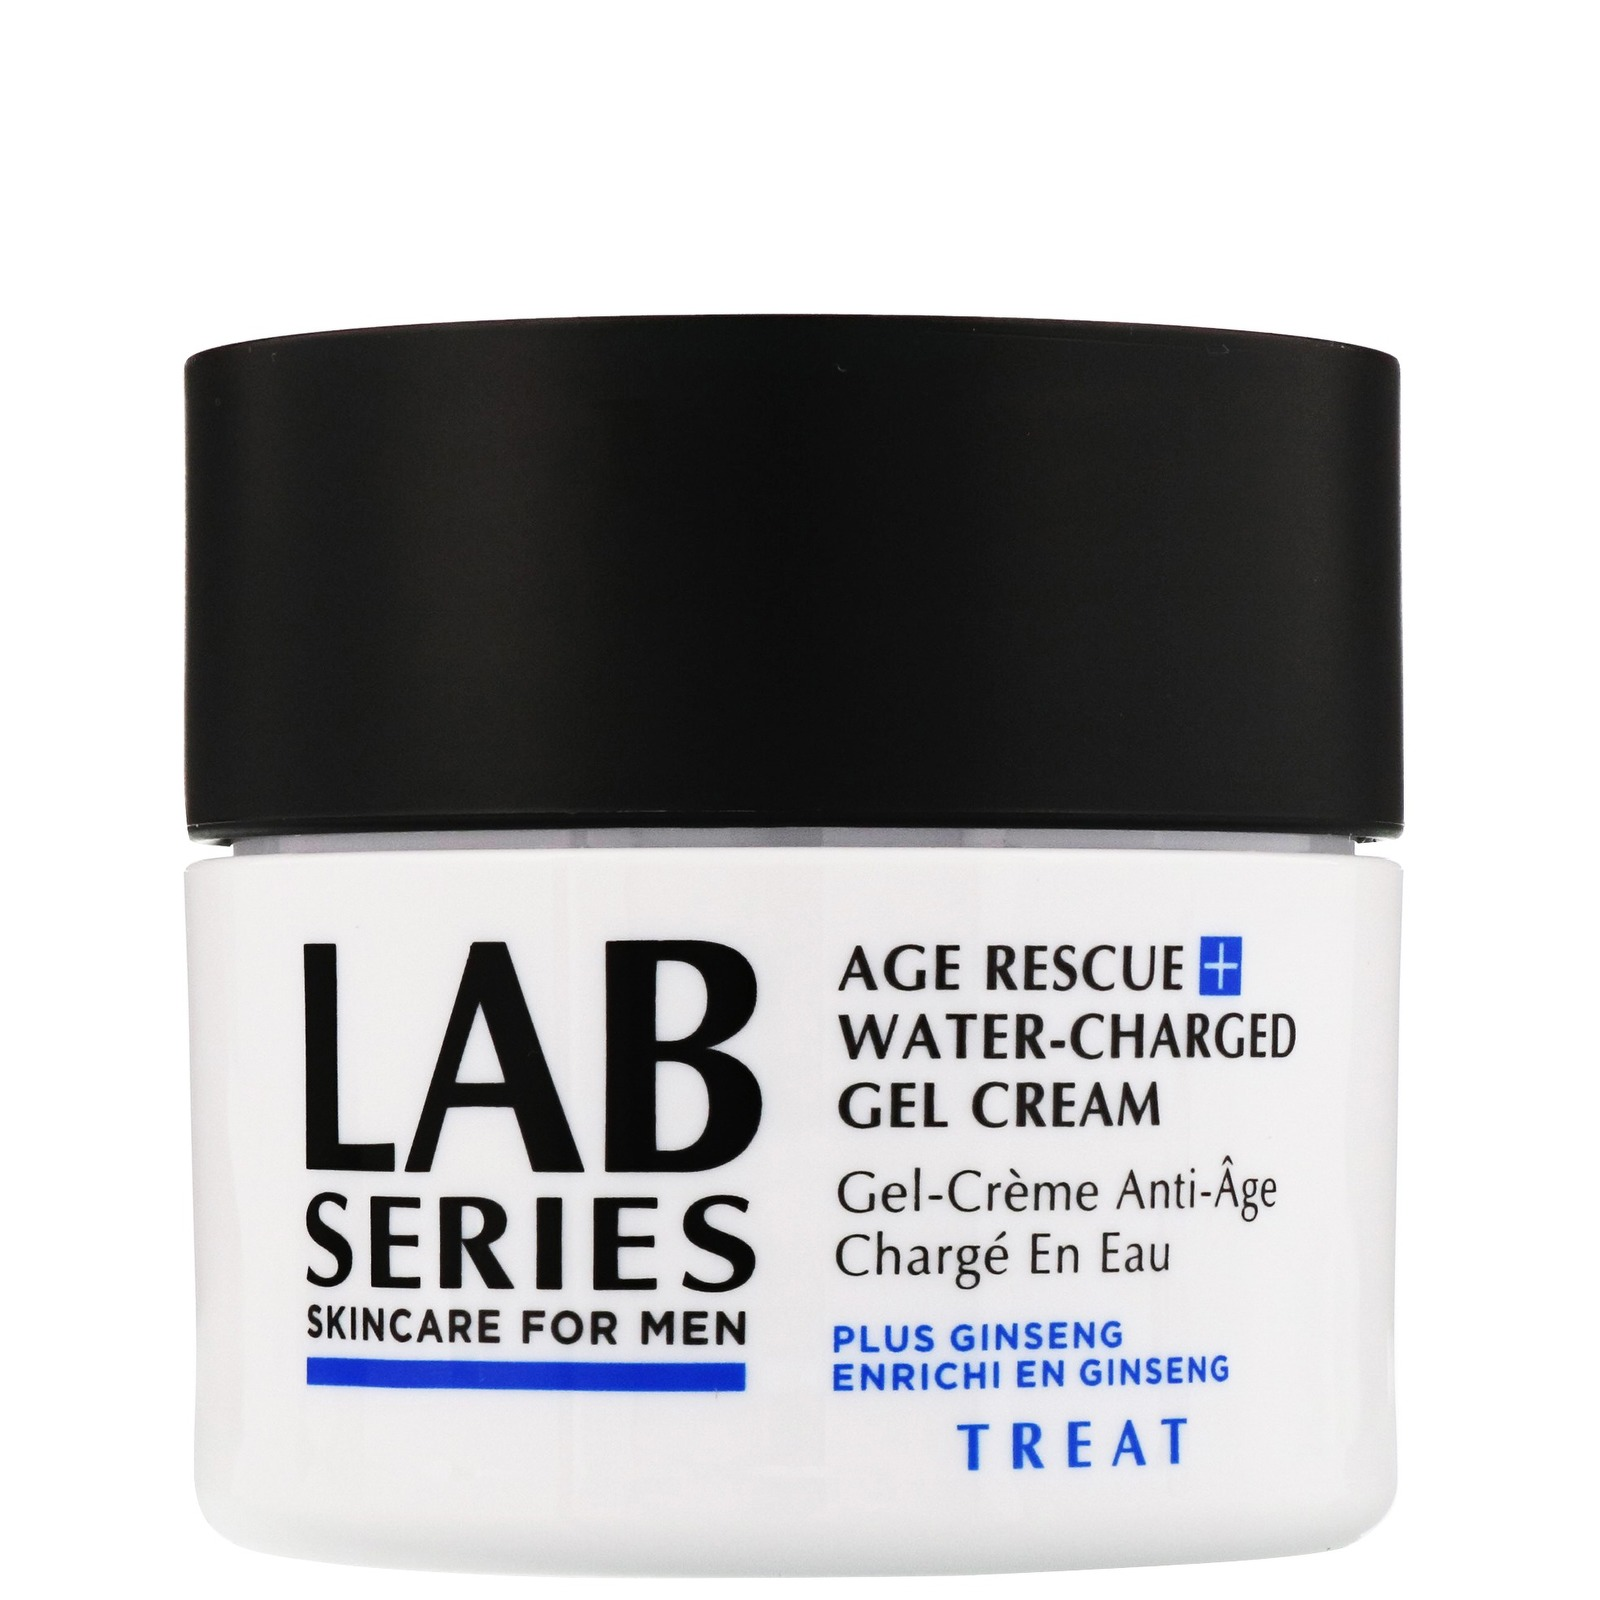 LAB SERIES AGE RESCUE + Water-Charged Gel Cream For All Skin Types 50ml